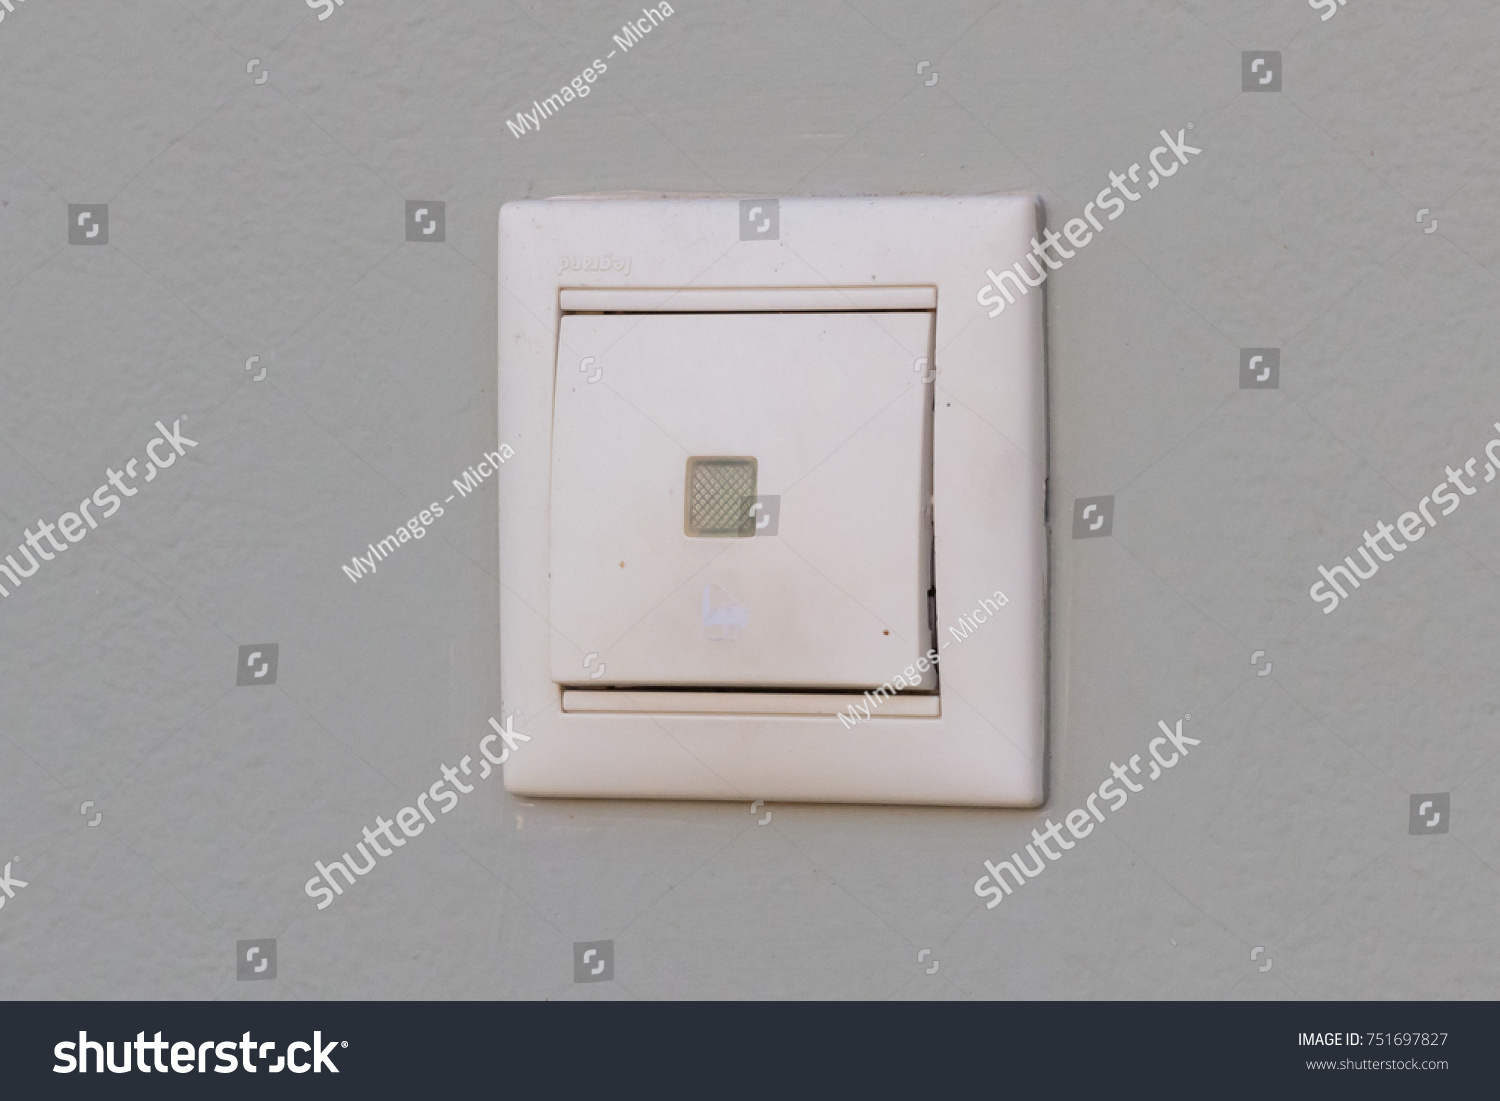 View of light switch on wall   EZ Canvas